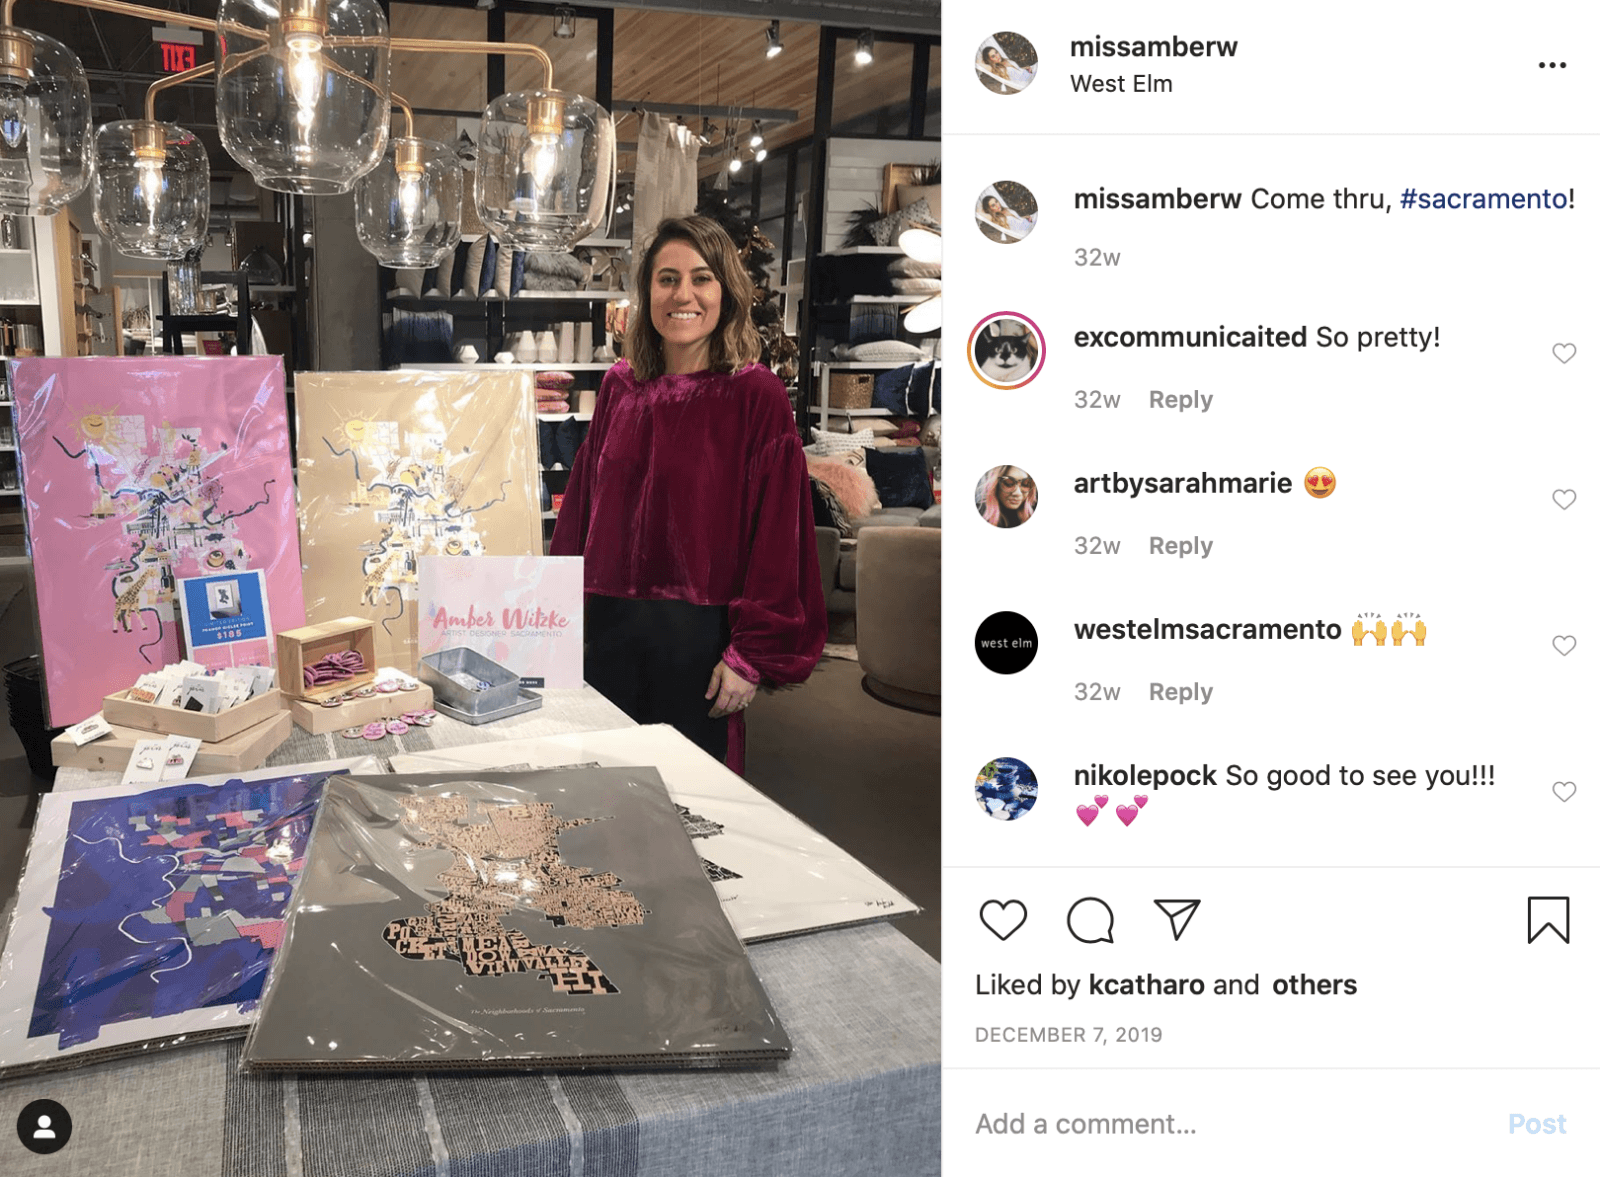 Amber Witzke Pop-Up at West Elm